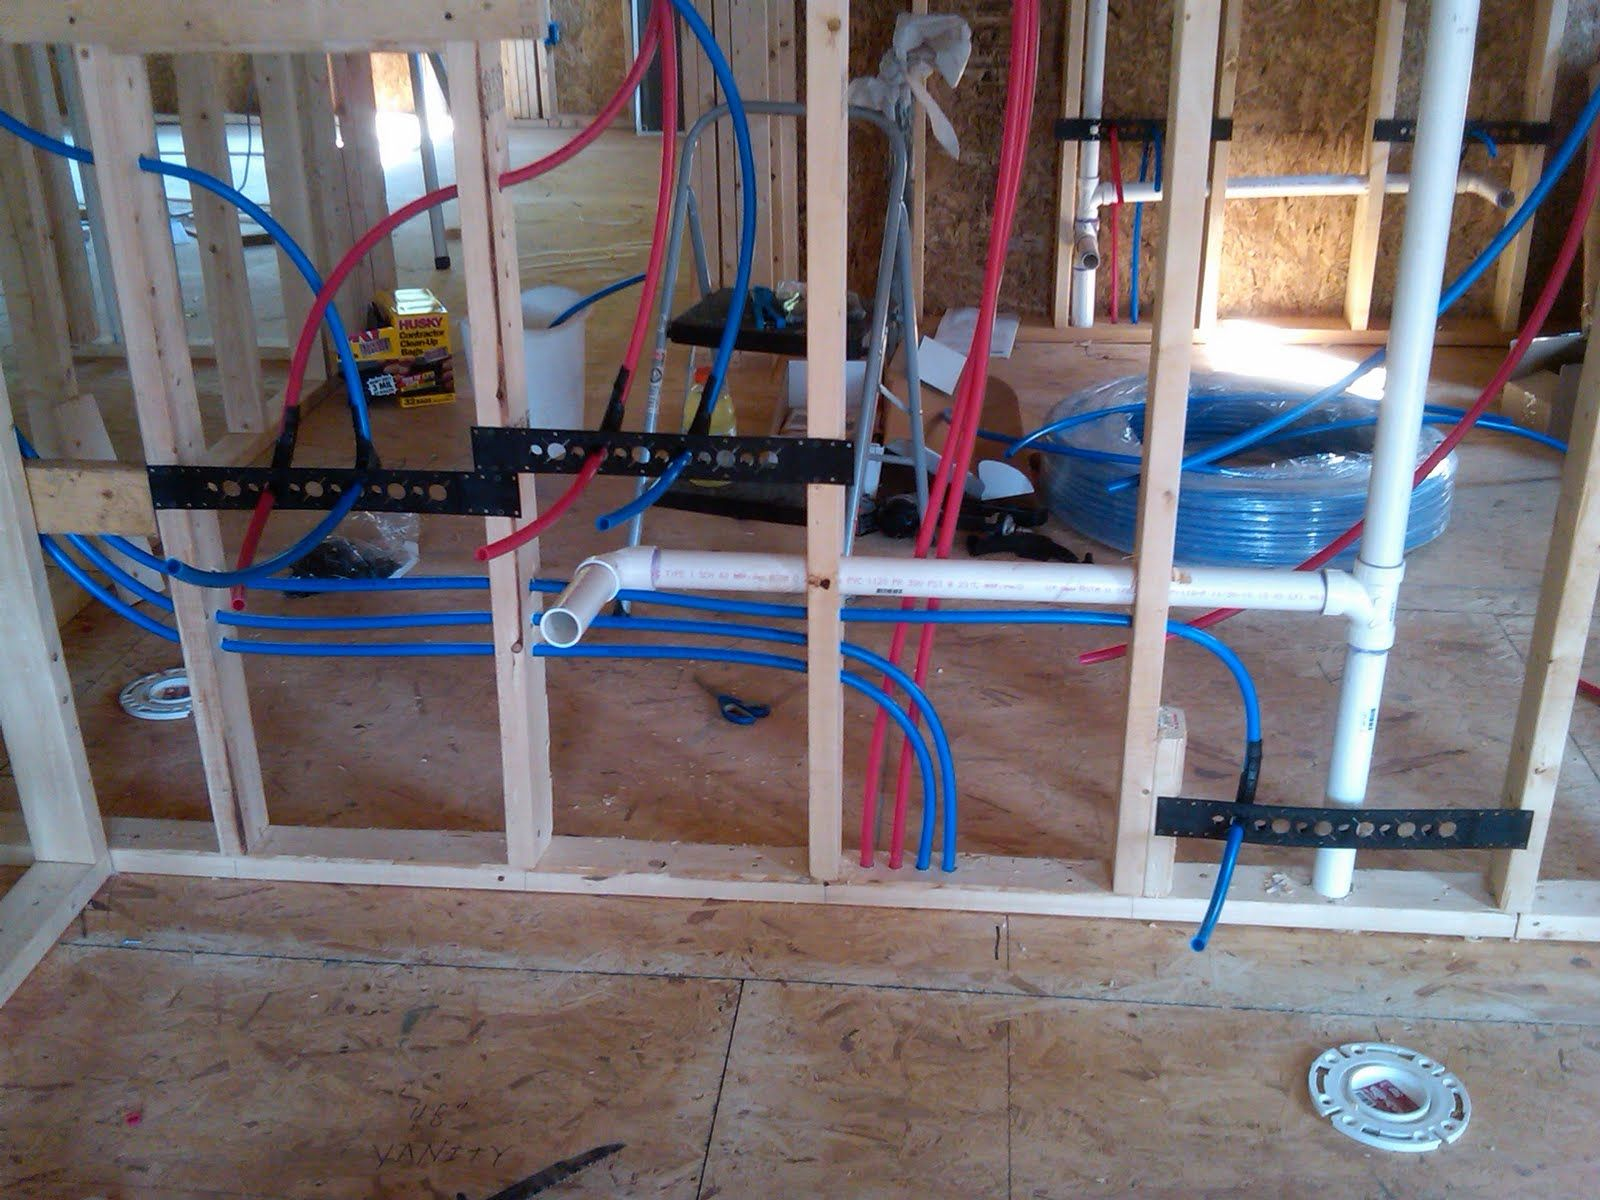 pex plumbing diagram lace sensor pickups wiring water lines install for toilet and sinks